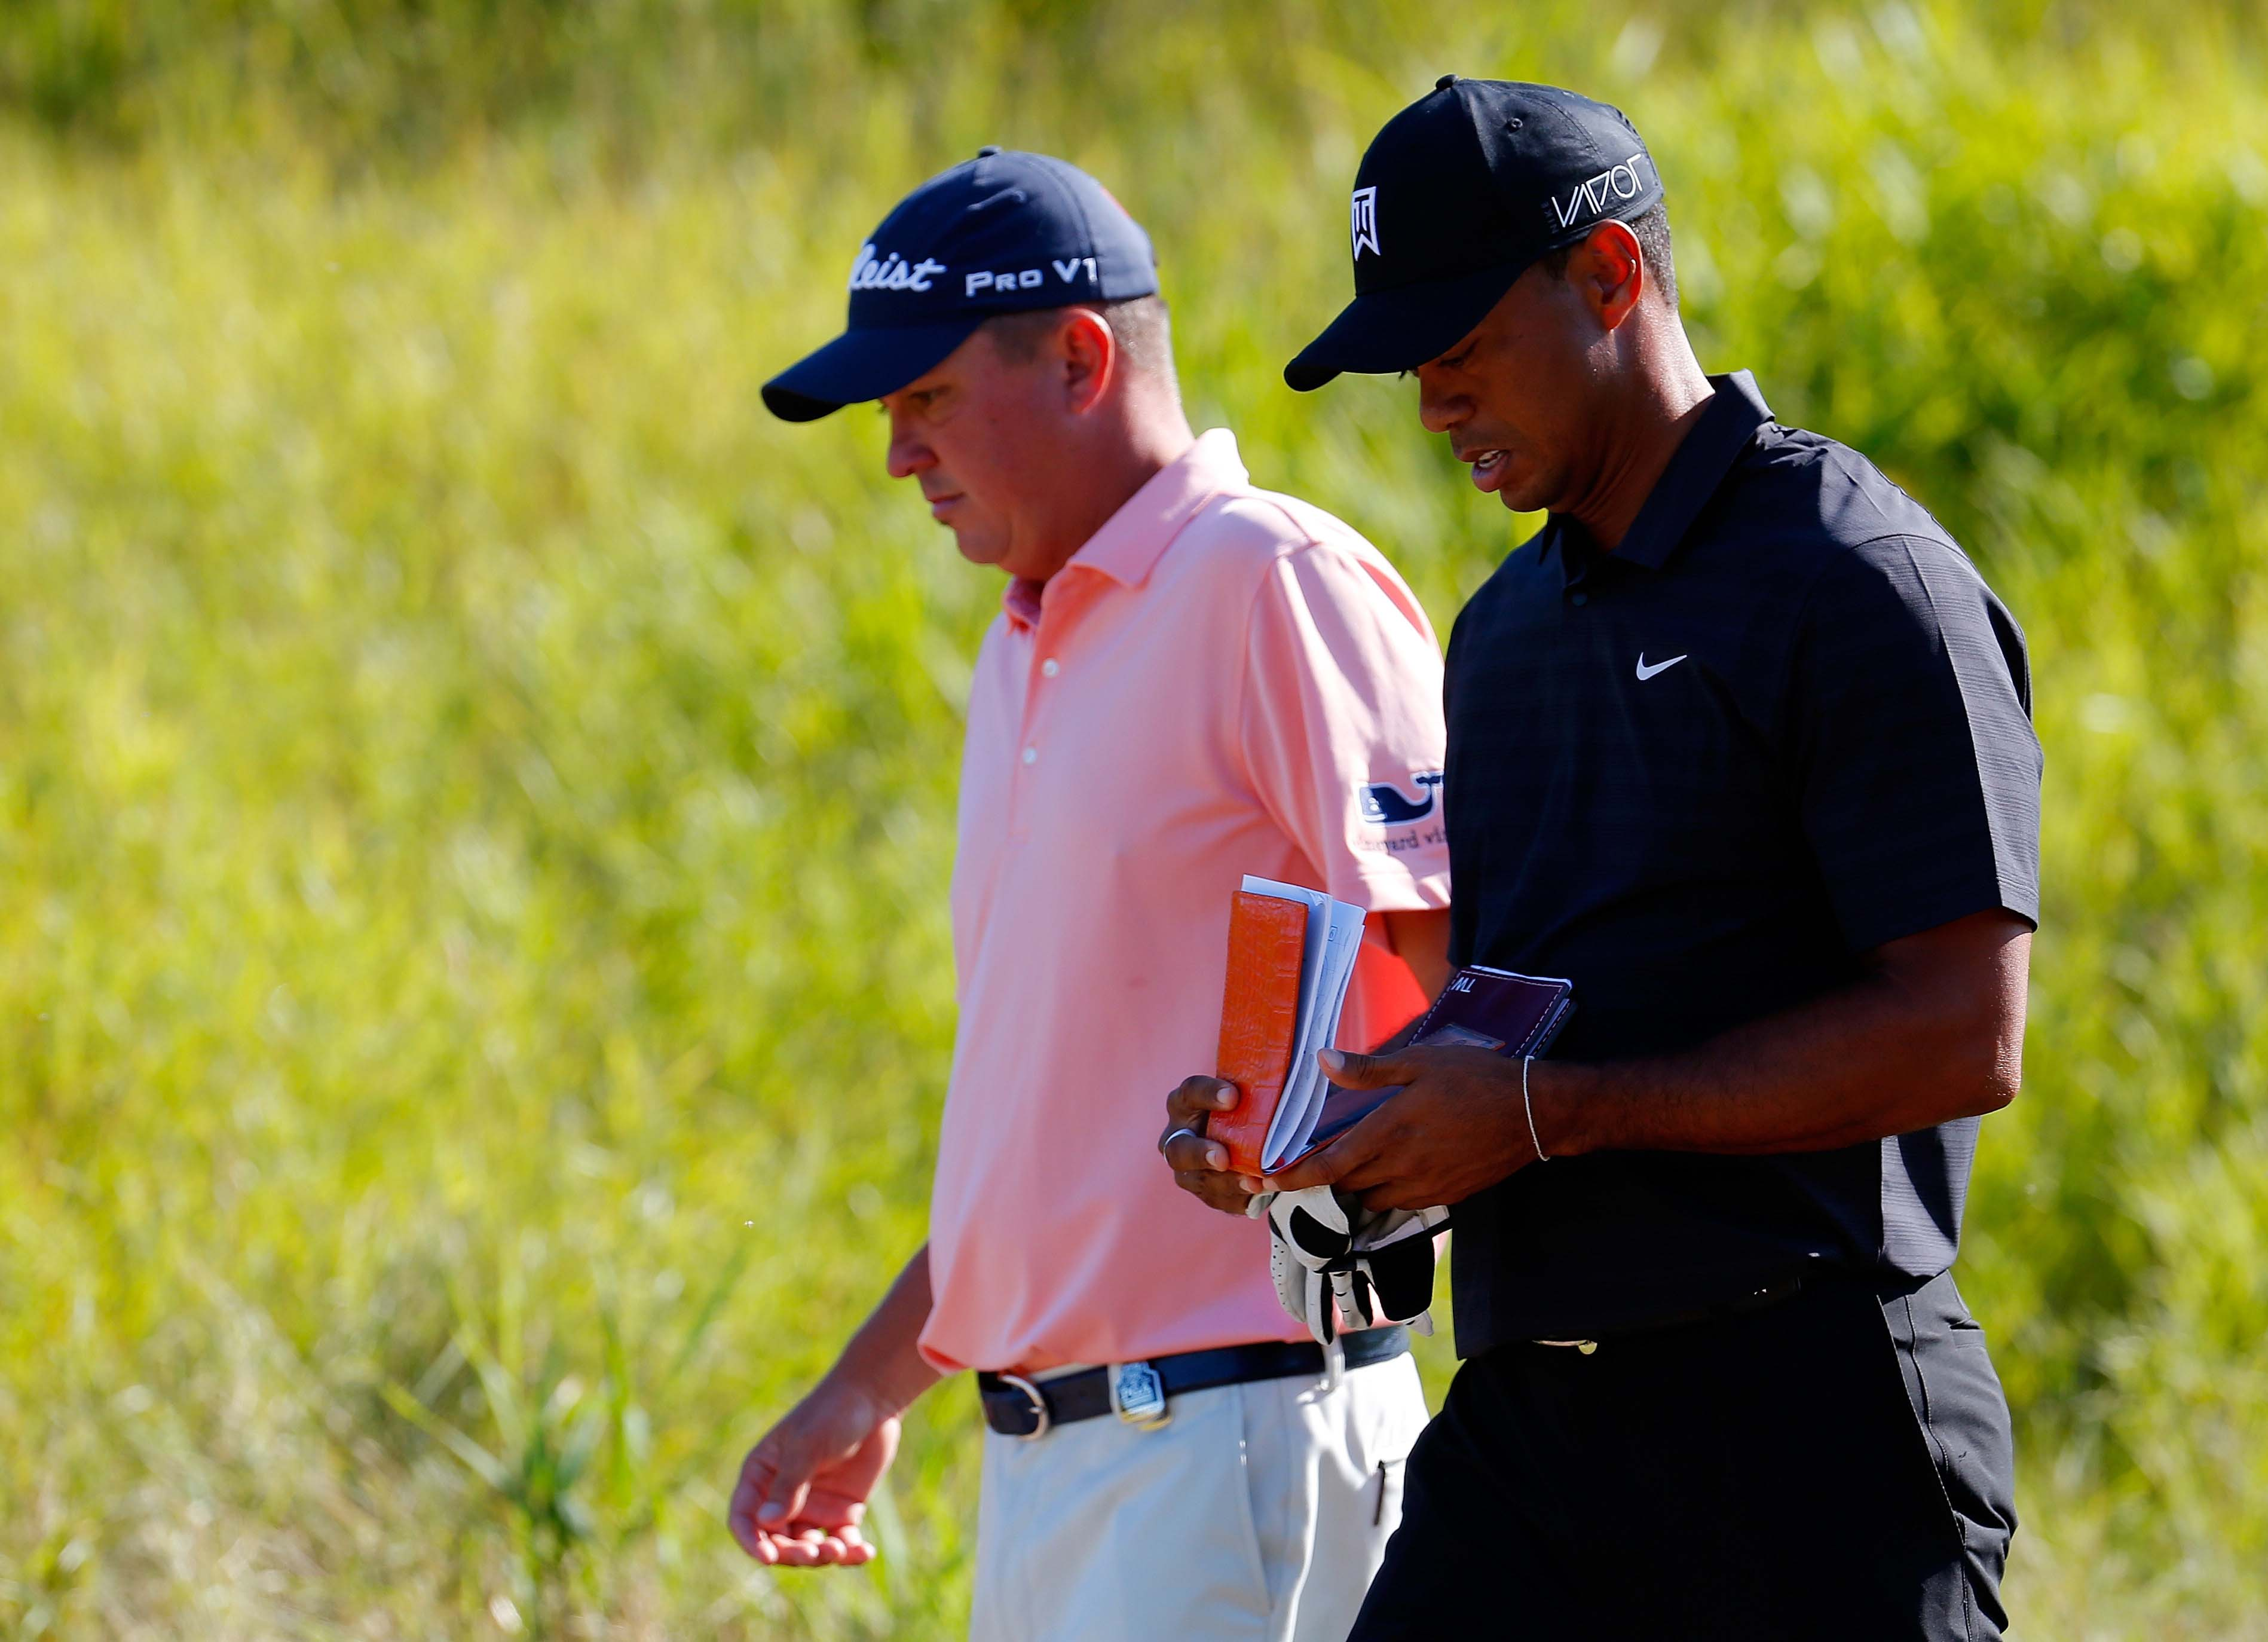 Tiger Woods denying rumors about Jason Dufner's ex-wife ... or